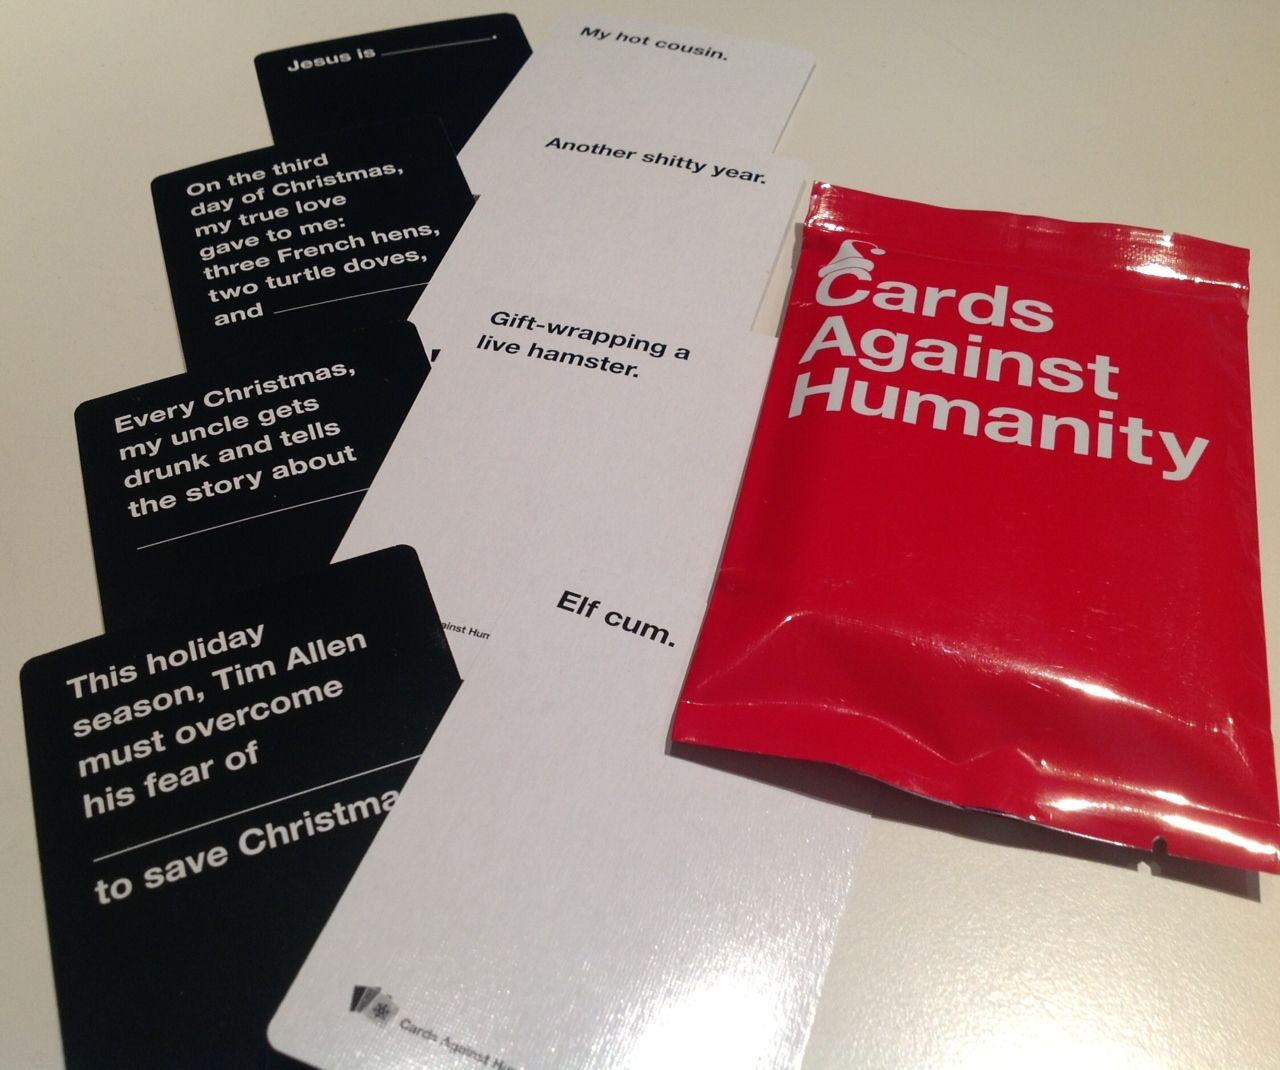 Nickelback Wwwjobspapacom Callstevenscom Cards Against Humanity Brings Us All Together Cards Against Humanity